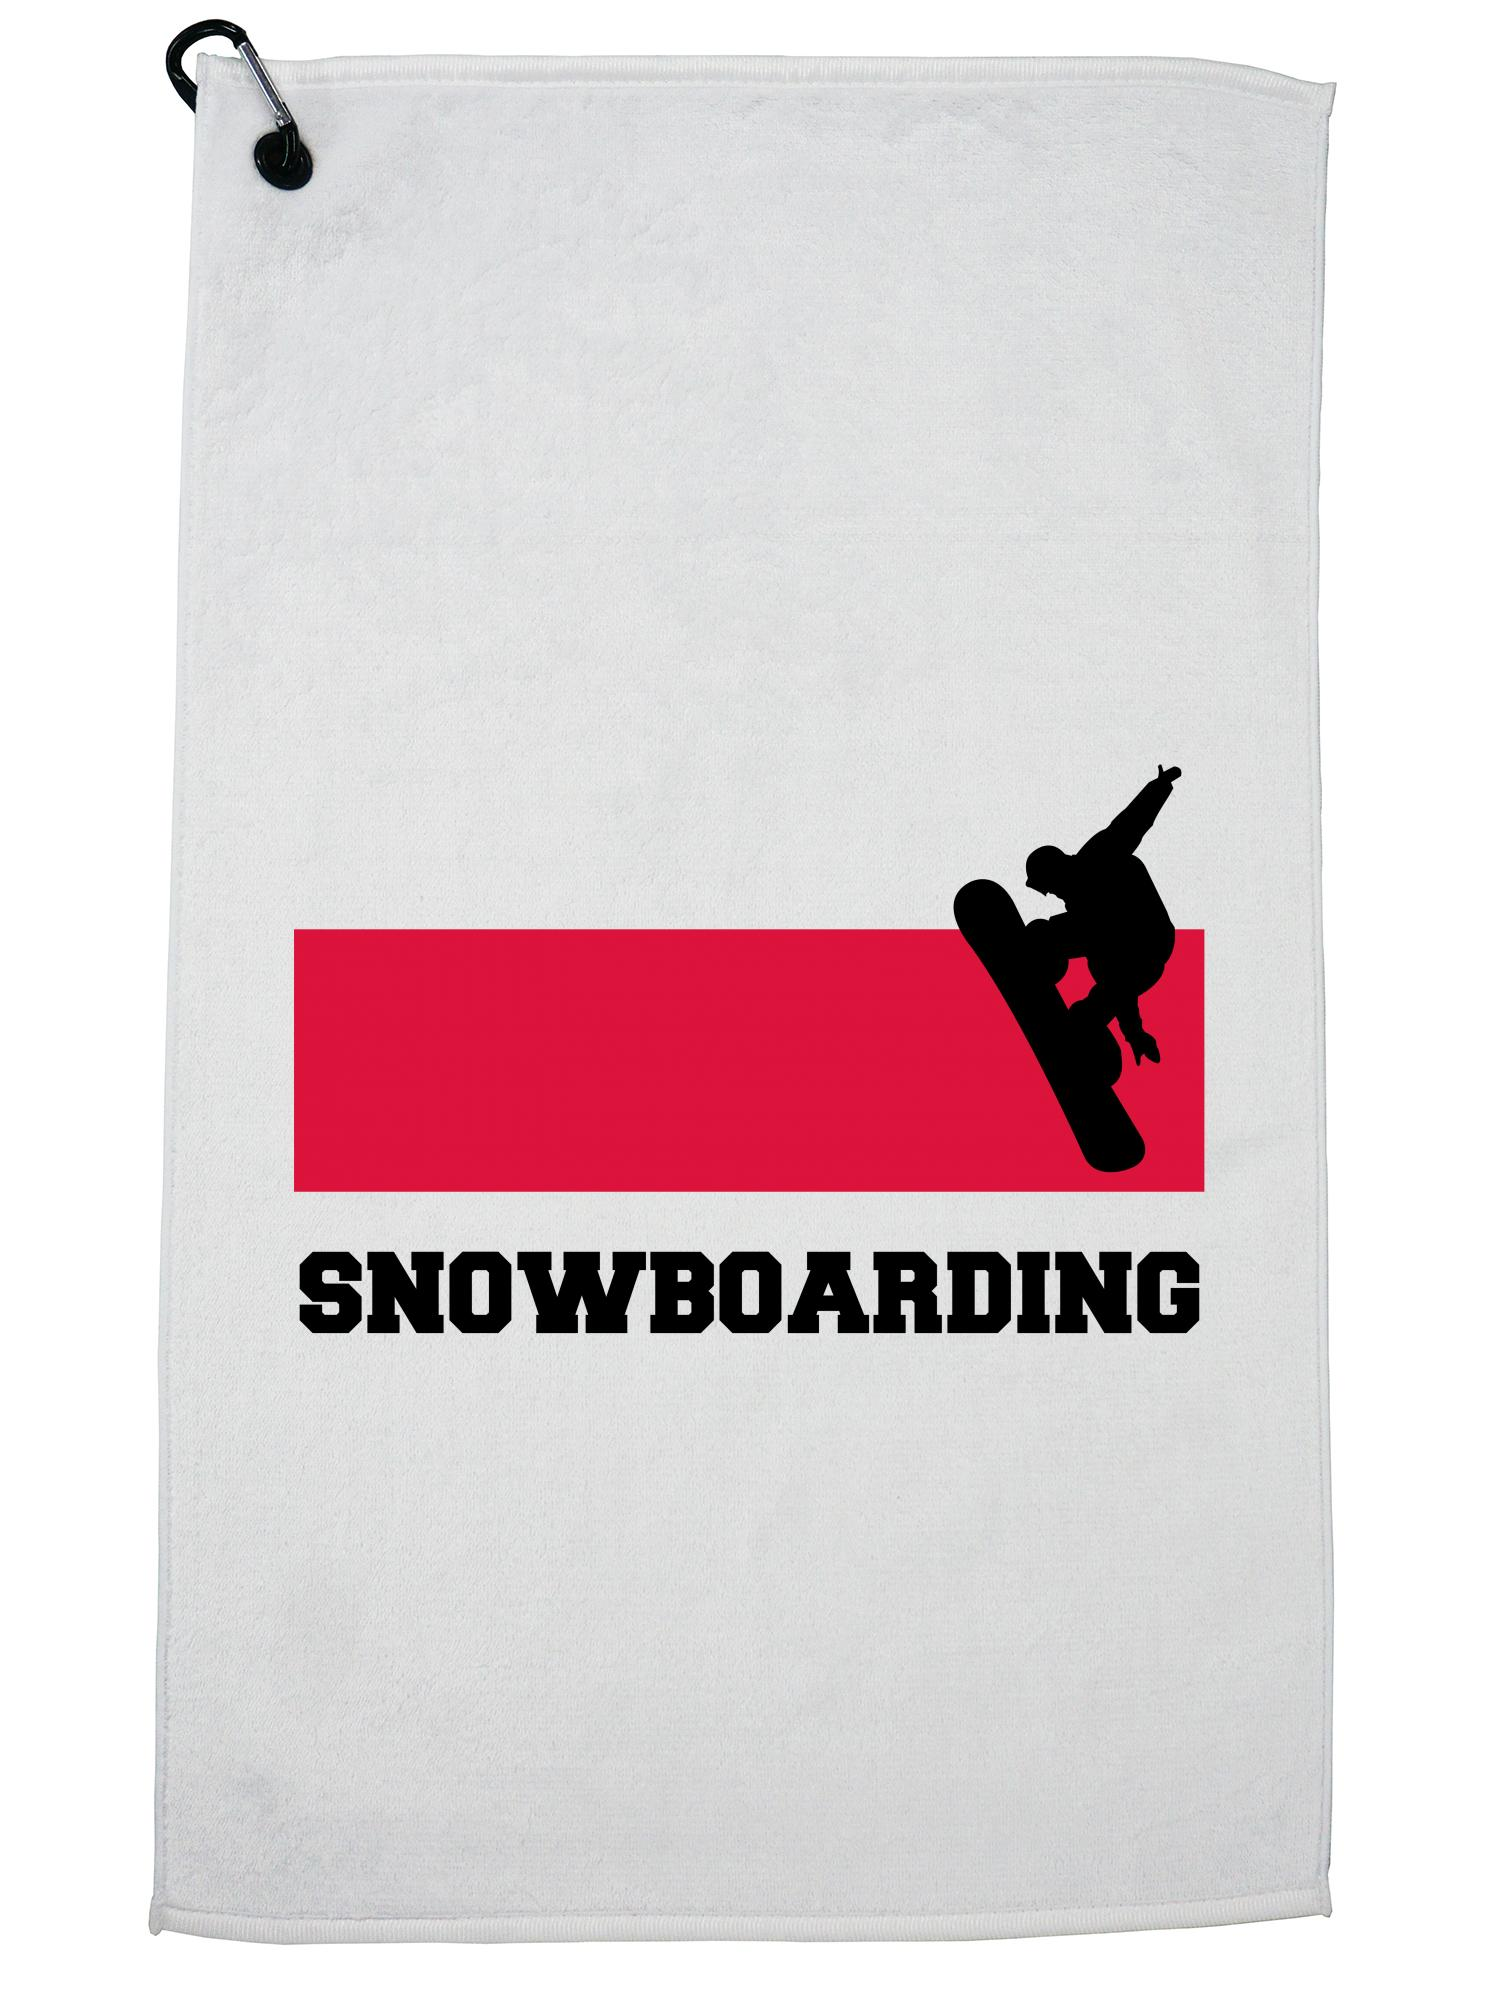 Poland Olympic Snowboarding Flag Silhouette Golf Towel with Carabiner Clip by Hollywood Thread